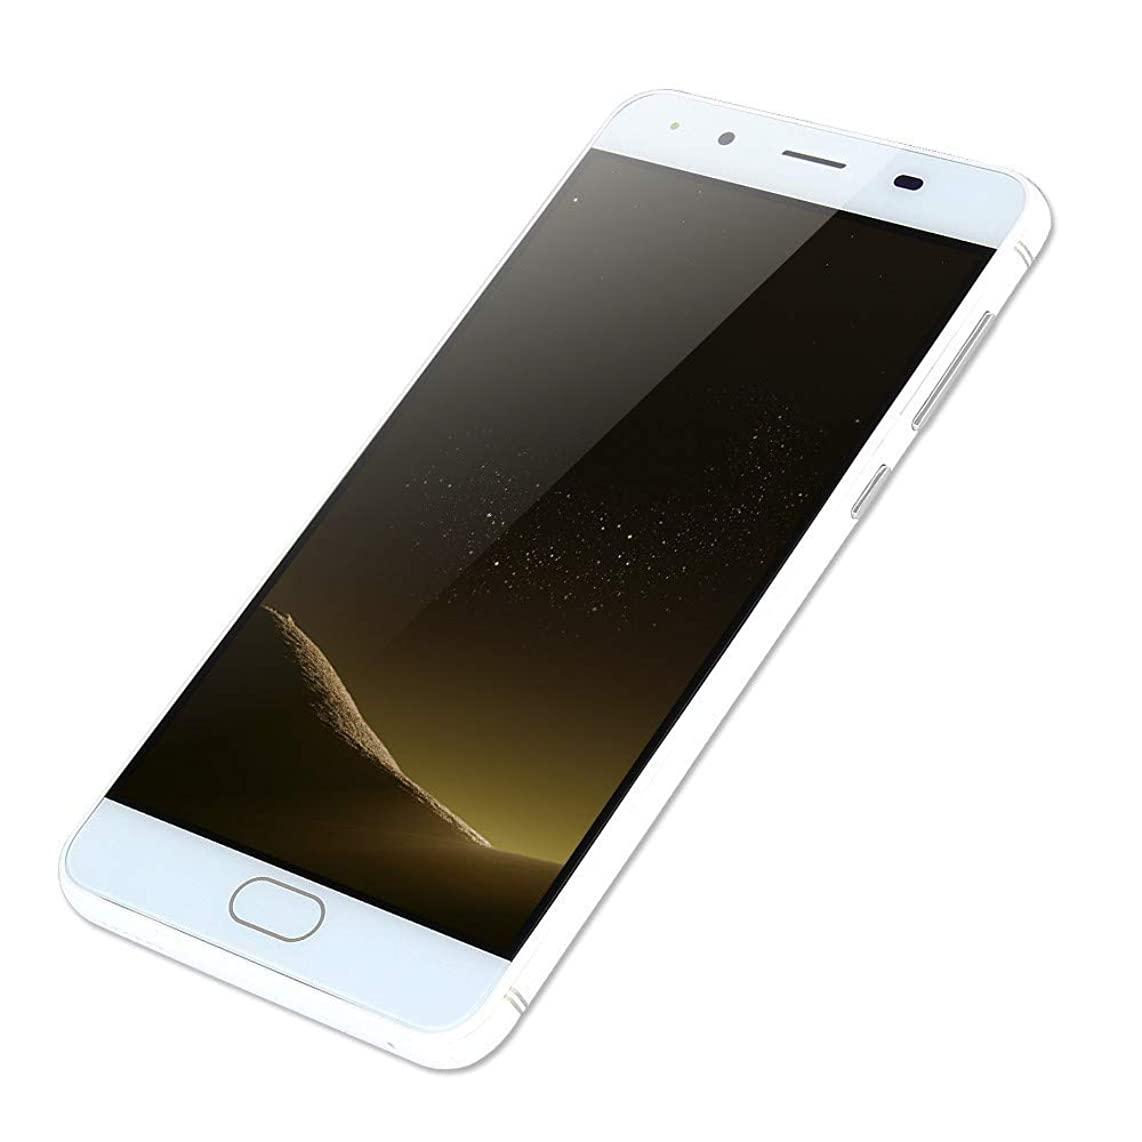 Smartphone Unlocked Cell Phones 5.0''Ultrathin Android 5.1 Quad-Core 512MB+512MB GSM WiFi Dual SIM Smartphone